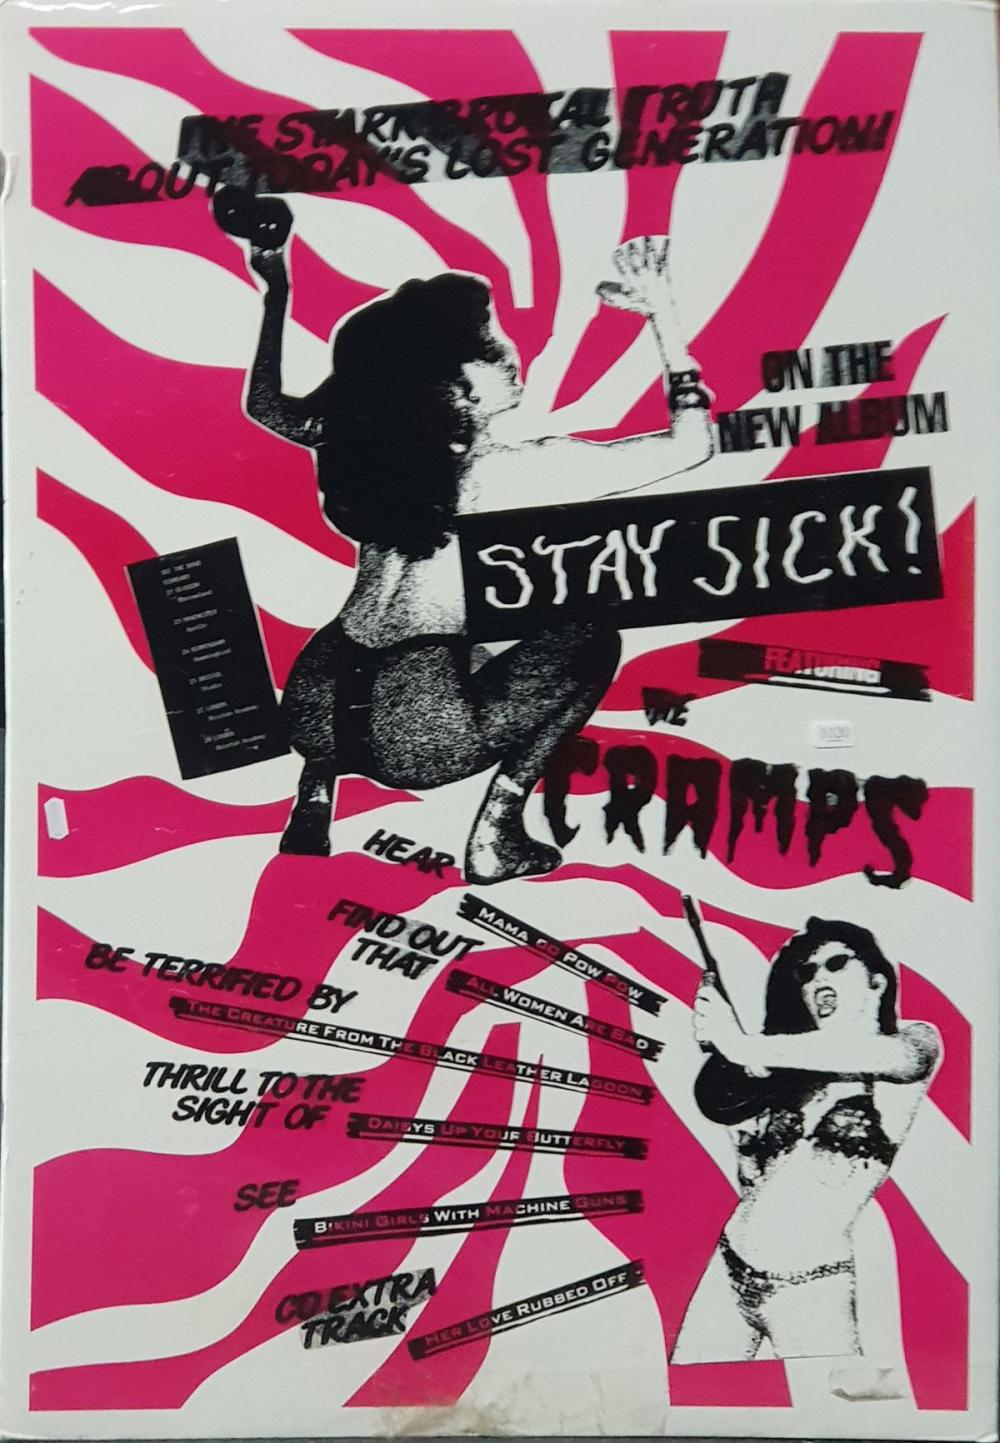 Vintage STAY SICK Band Poster